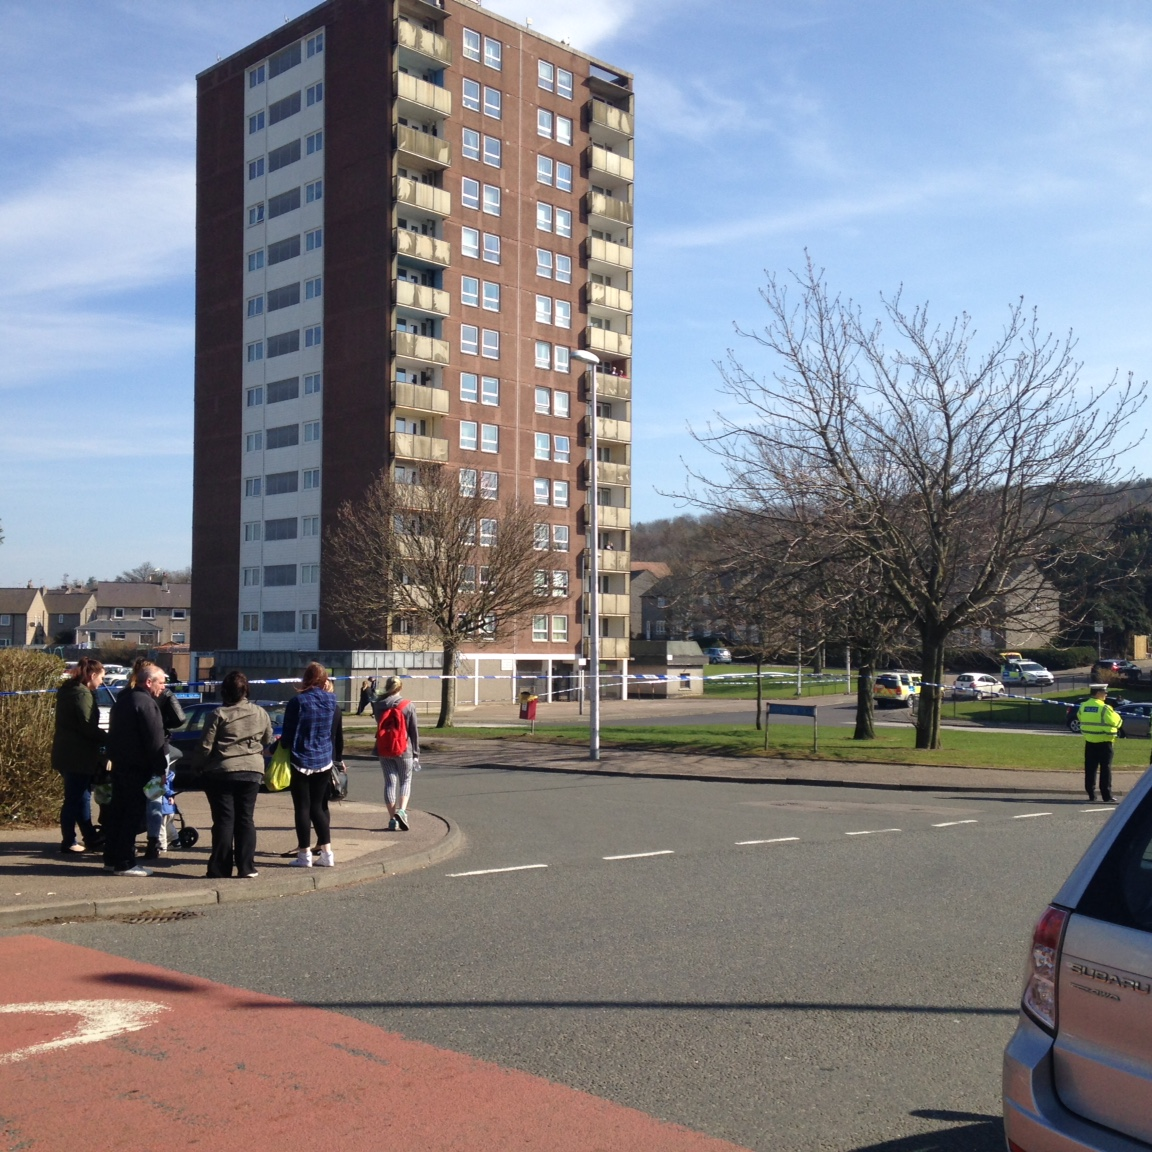 Police cordoned of areas in Aberdeen during the armed searches for the man